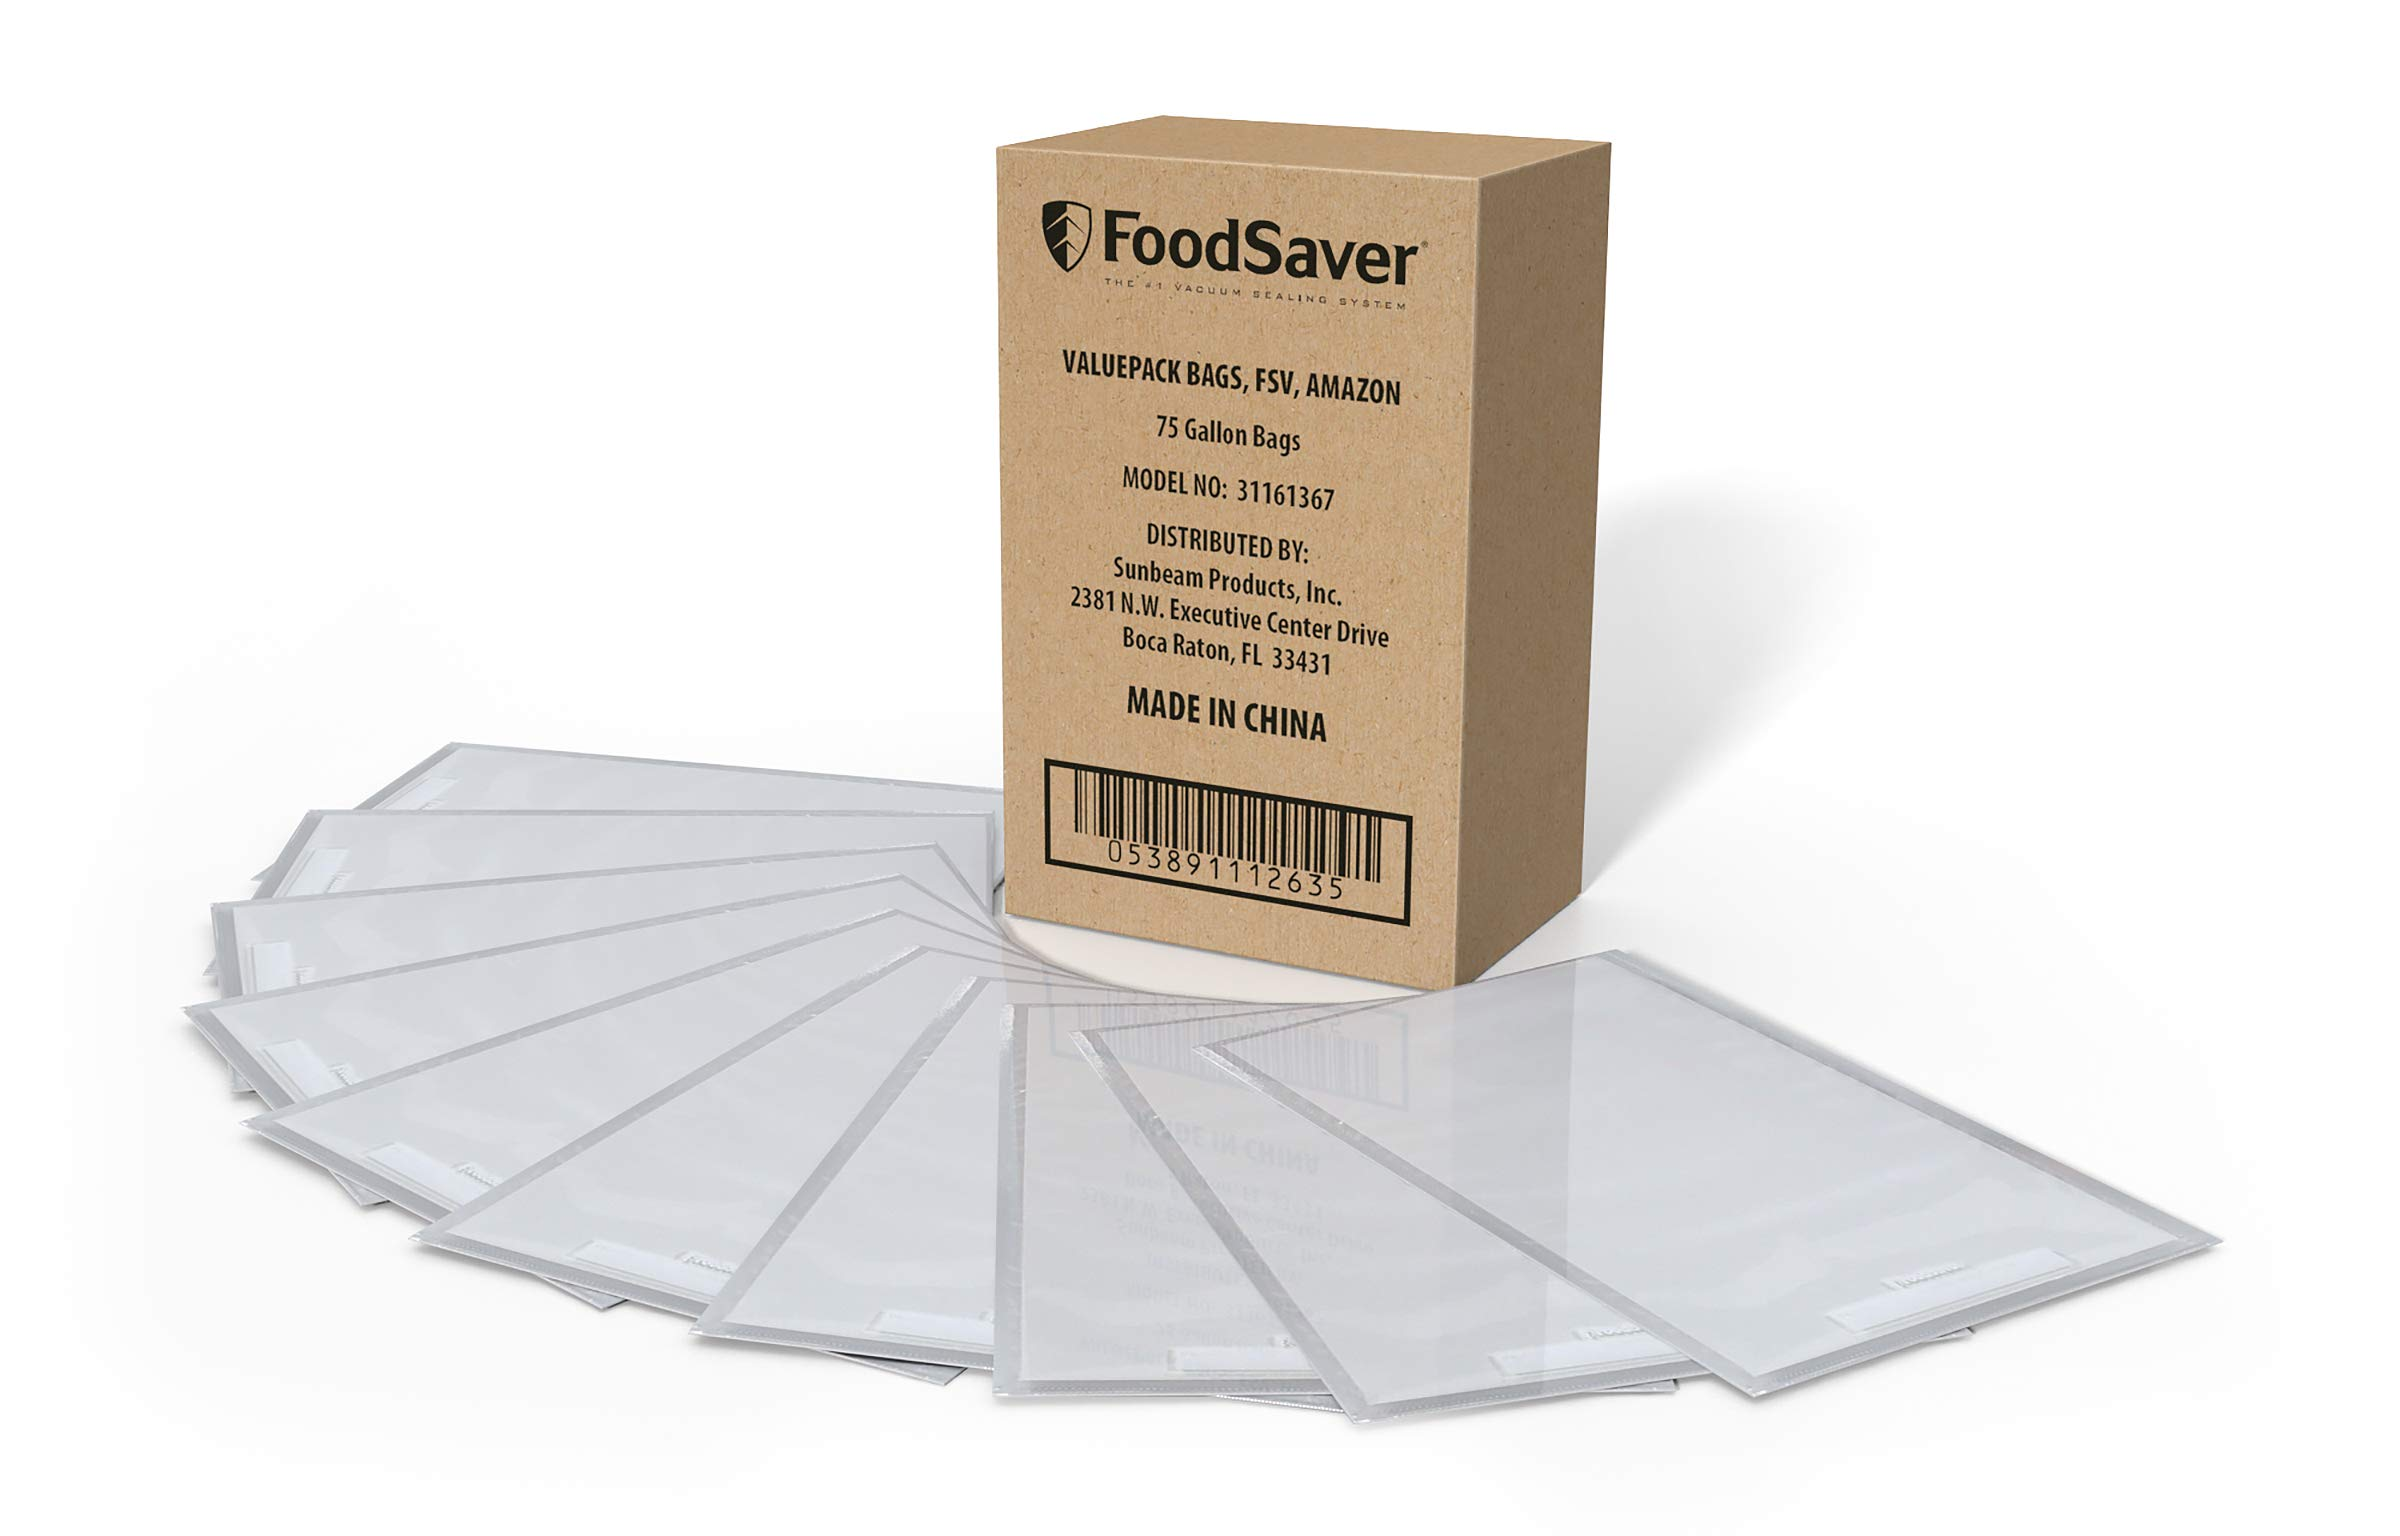 FoodSaver 1-Gallon Vacuum Sealer, Bags, 75 Count | BPA-Free, Commercial Grade for Food Storage and Sous Vide by FoodSaver